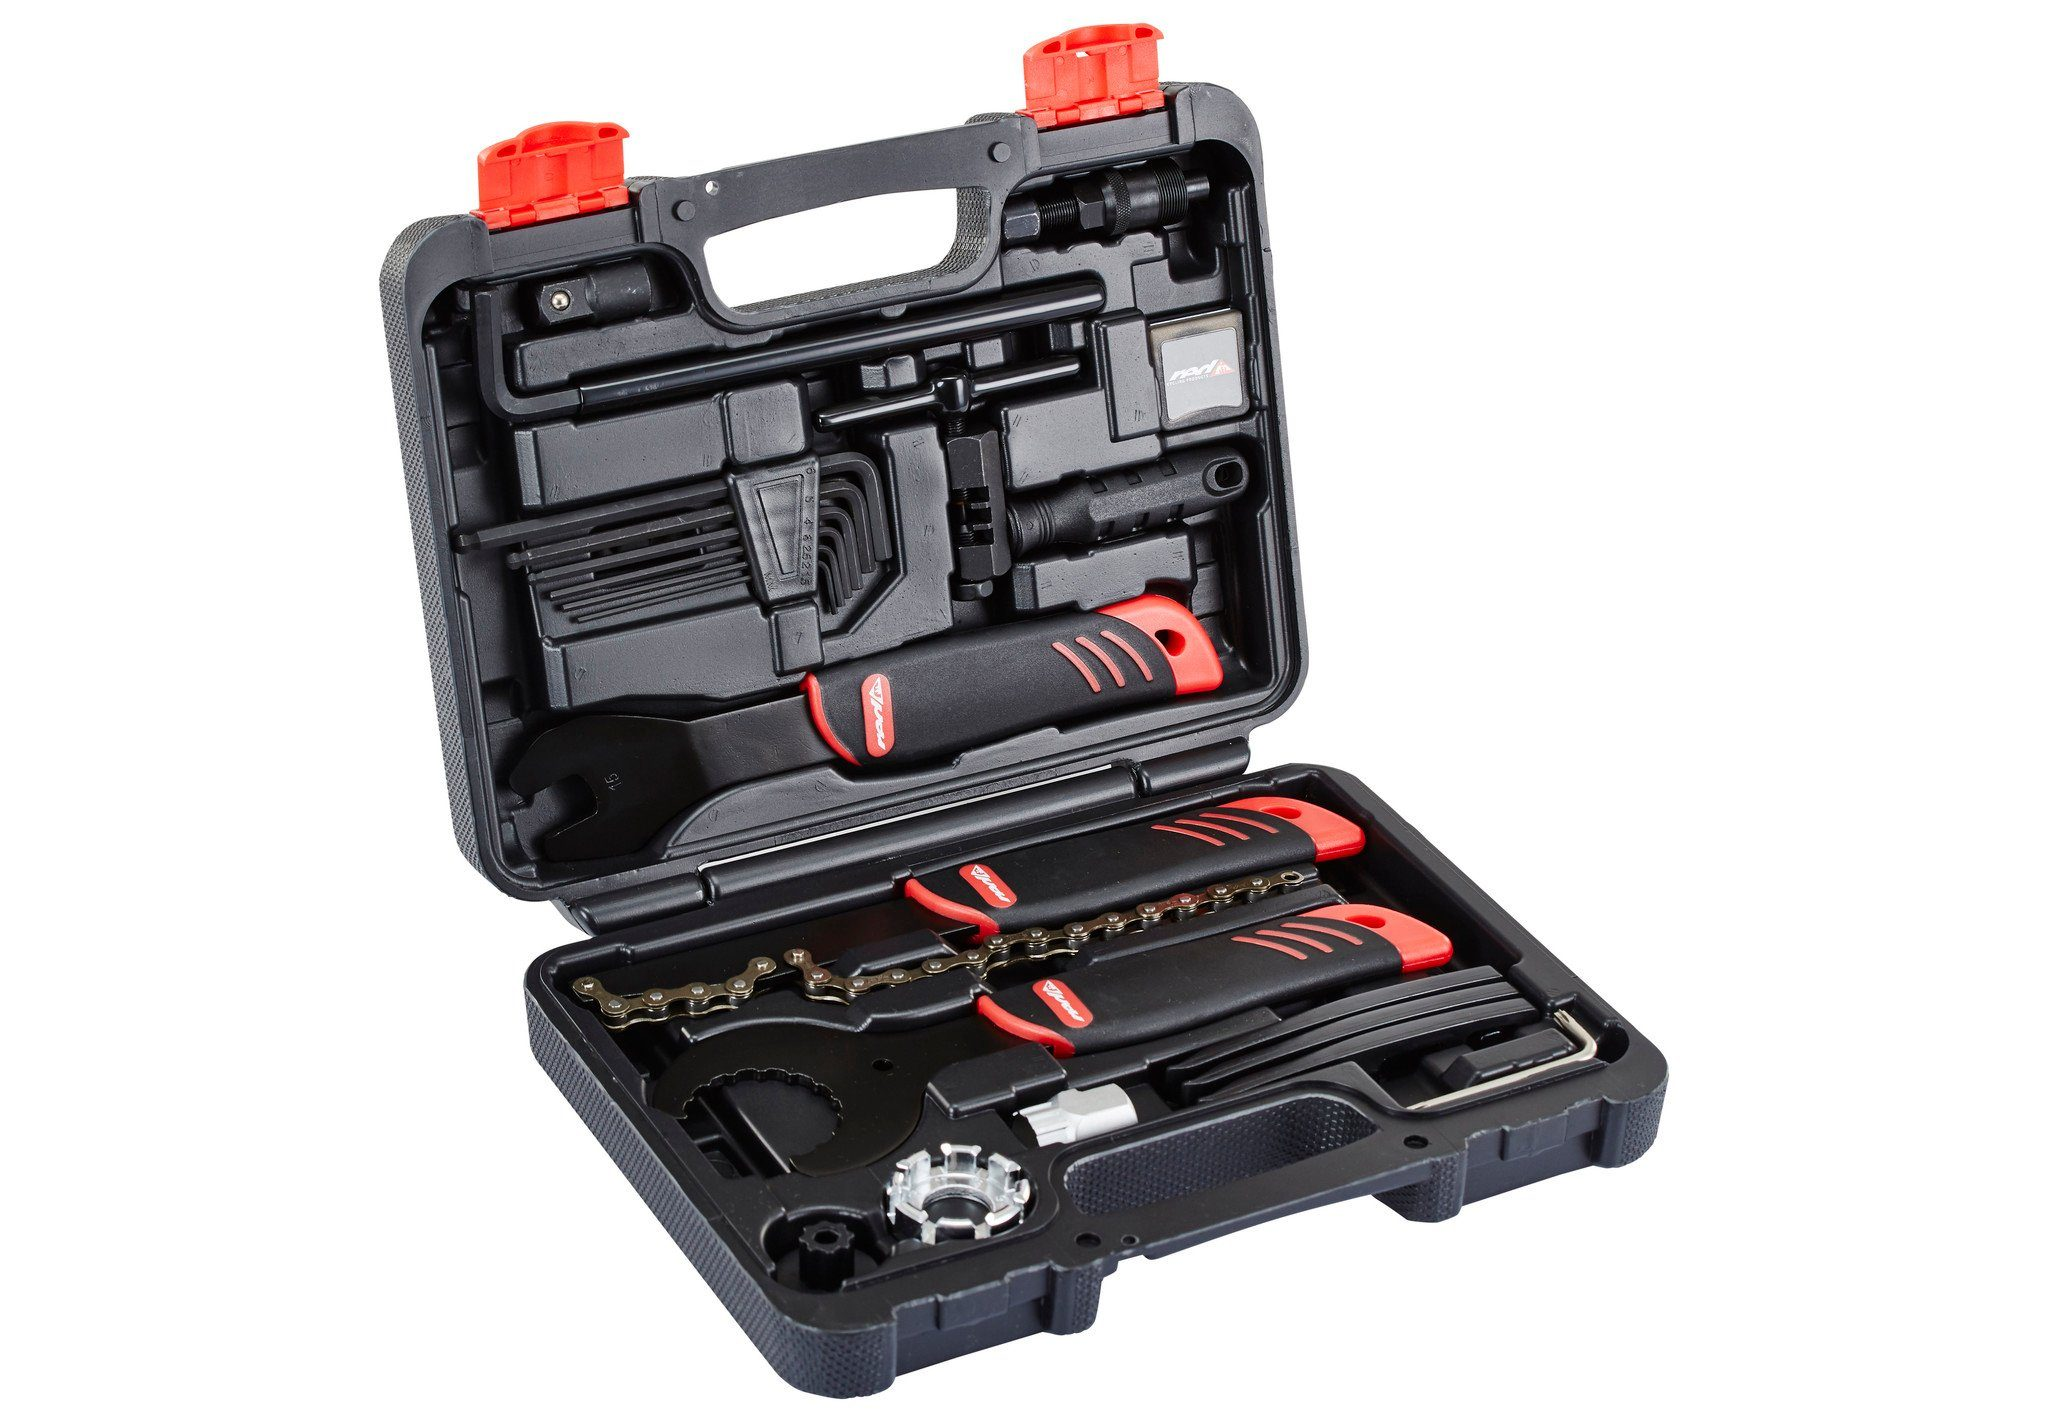 Red Cycling Products Werkzeug & Montage »Home Toolbox Werkzeugkoffer 22 tlg.«